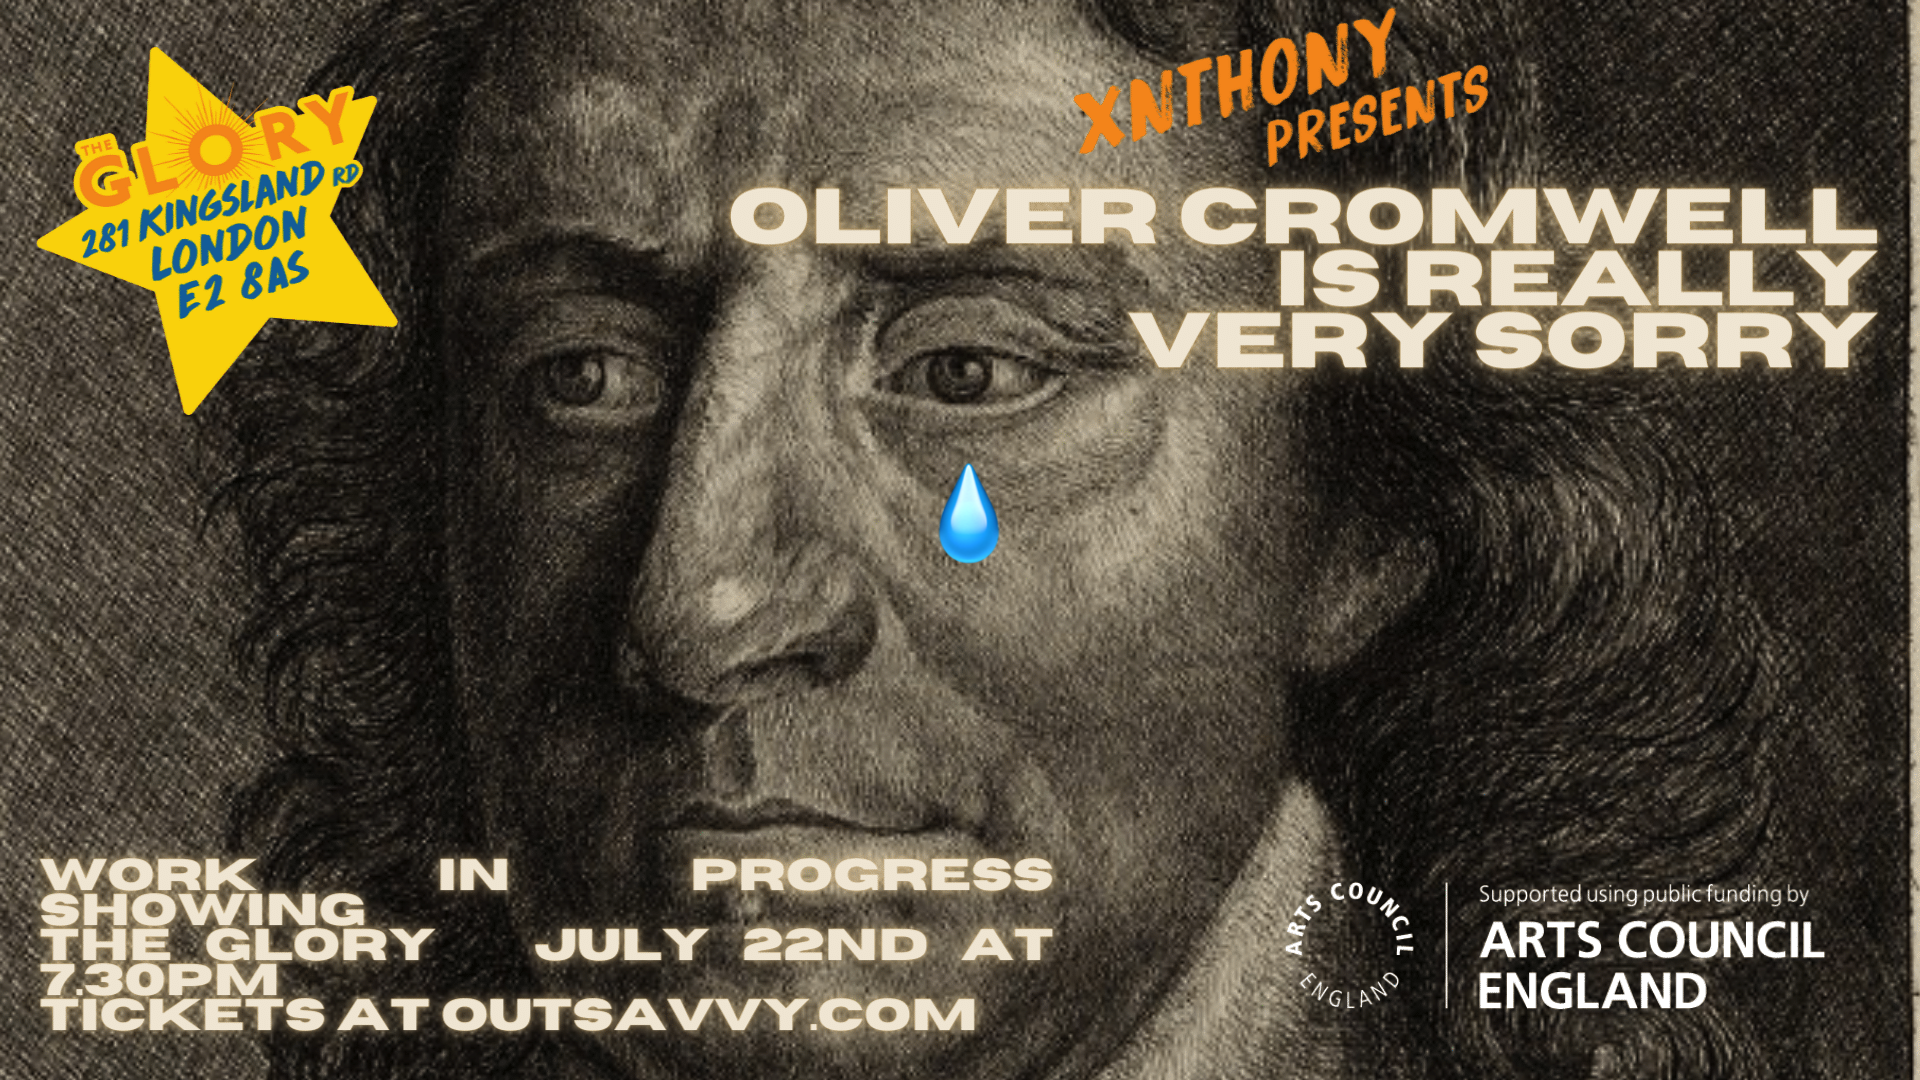 Oliver Cromwell is Really Very Sorry